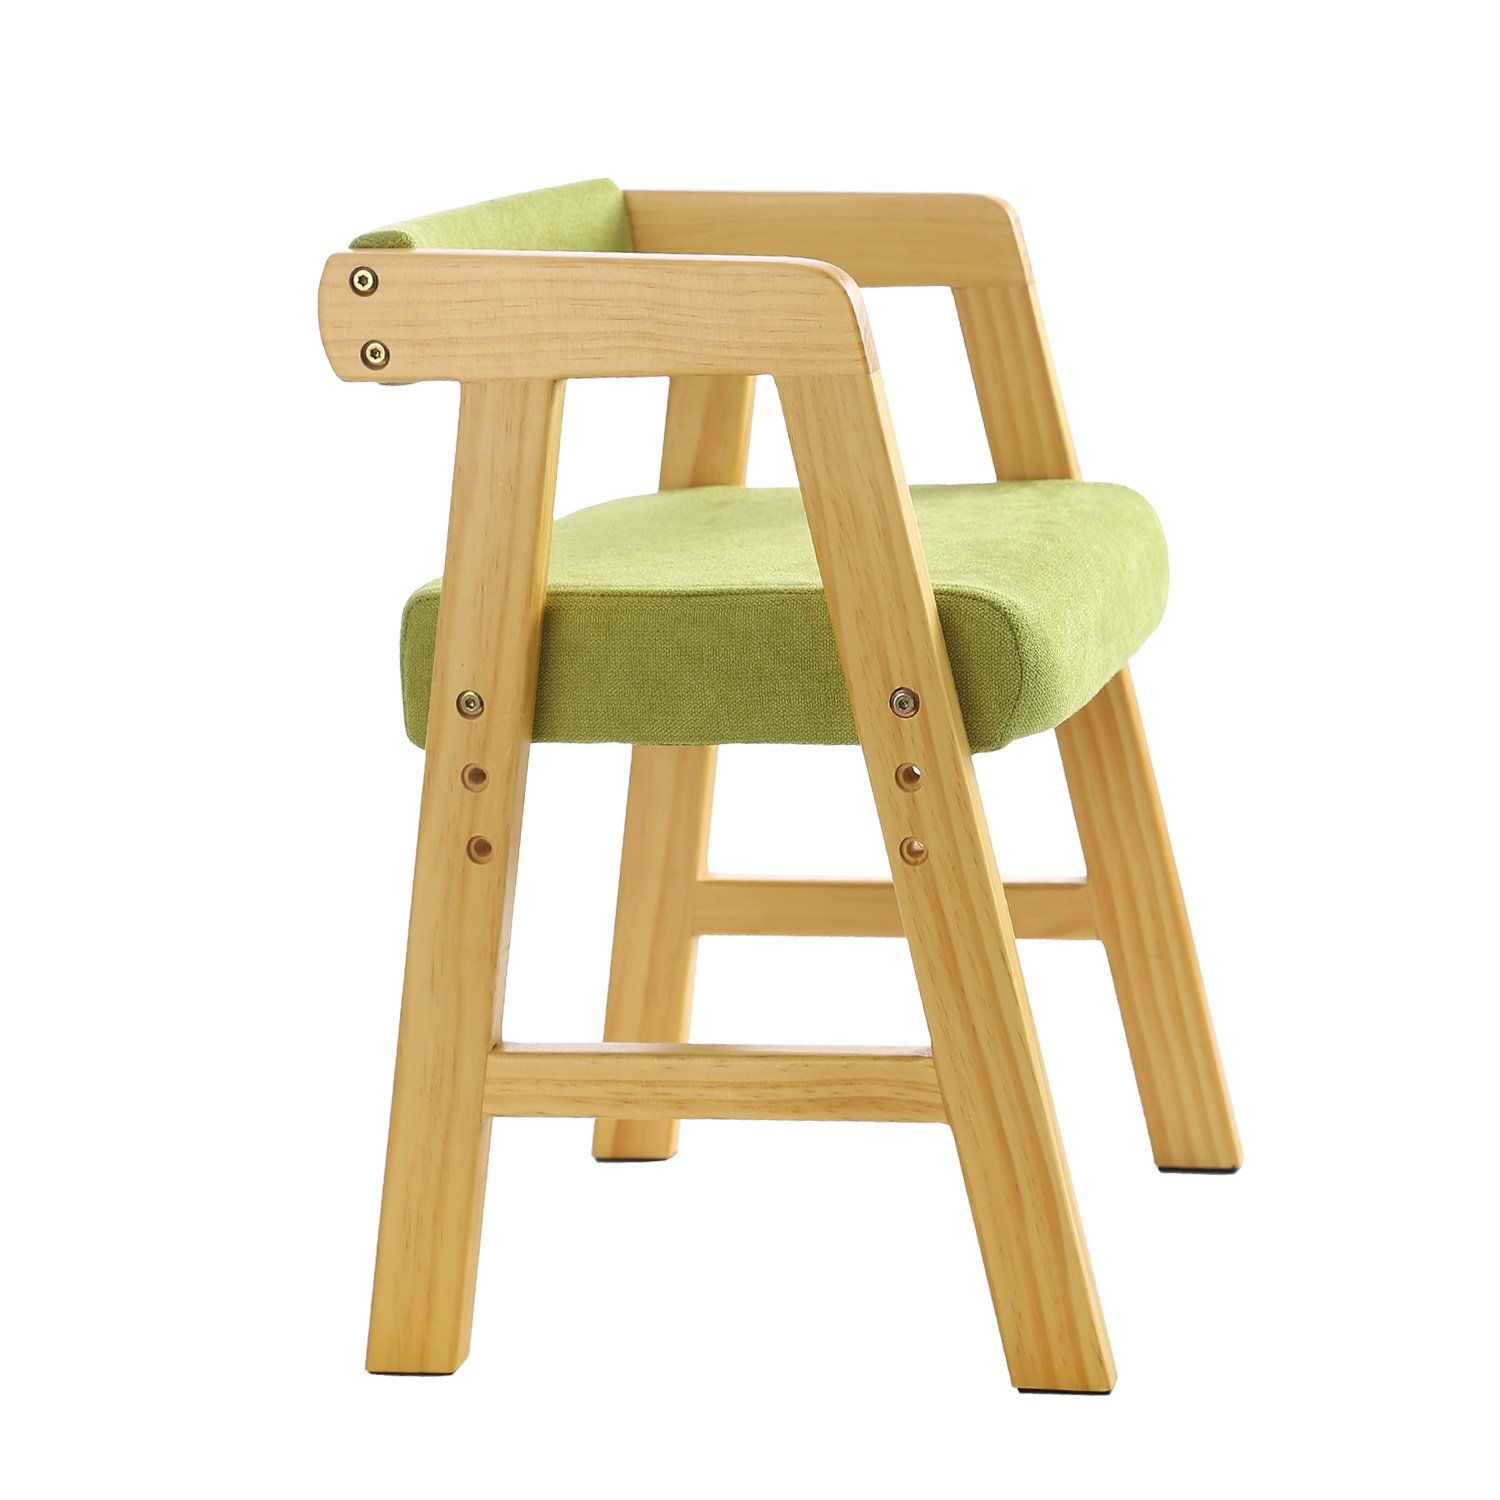 Youhi Heightadjustable Childrens Chair Kids Solid Wooden Study Chairs For 3 Gear Can Lift Chair Click On The Childrens Chairs Kids Chairs Adjustable Chairs